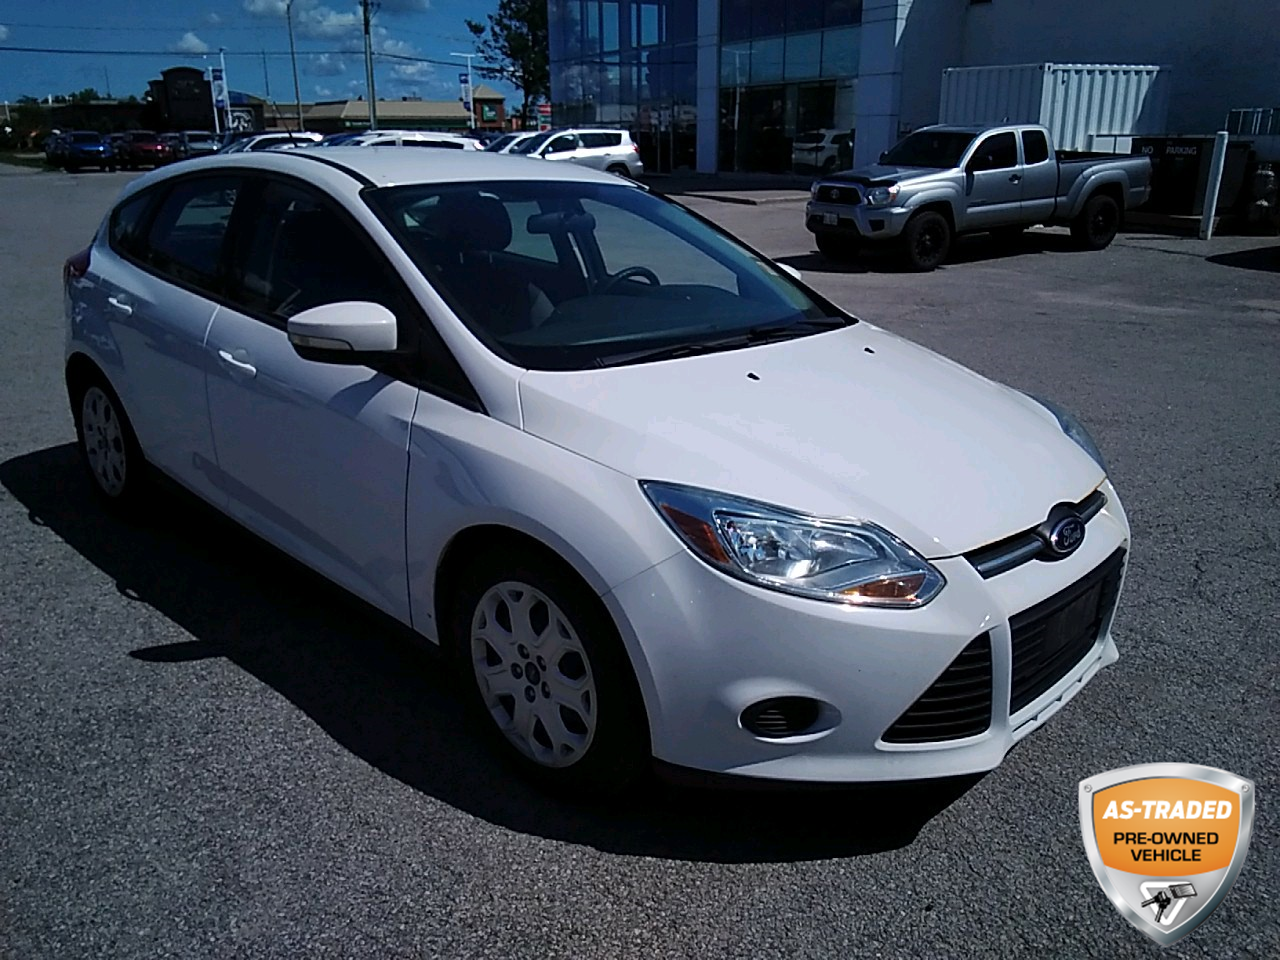 used 2014 Ford Focus car, priced at $5,849